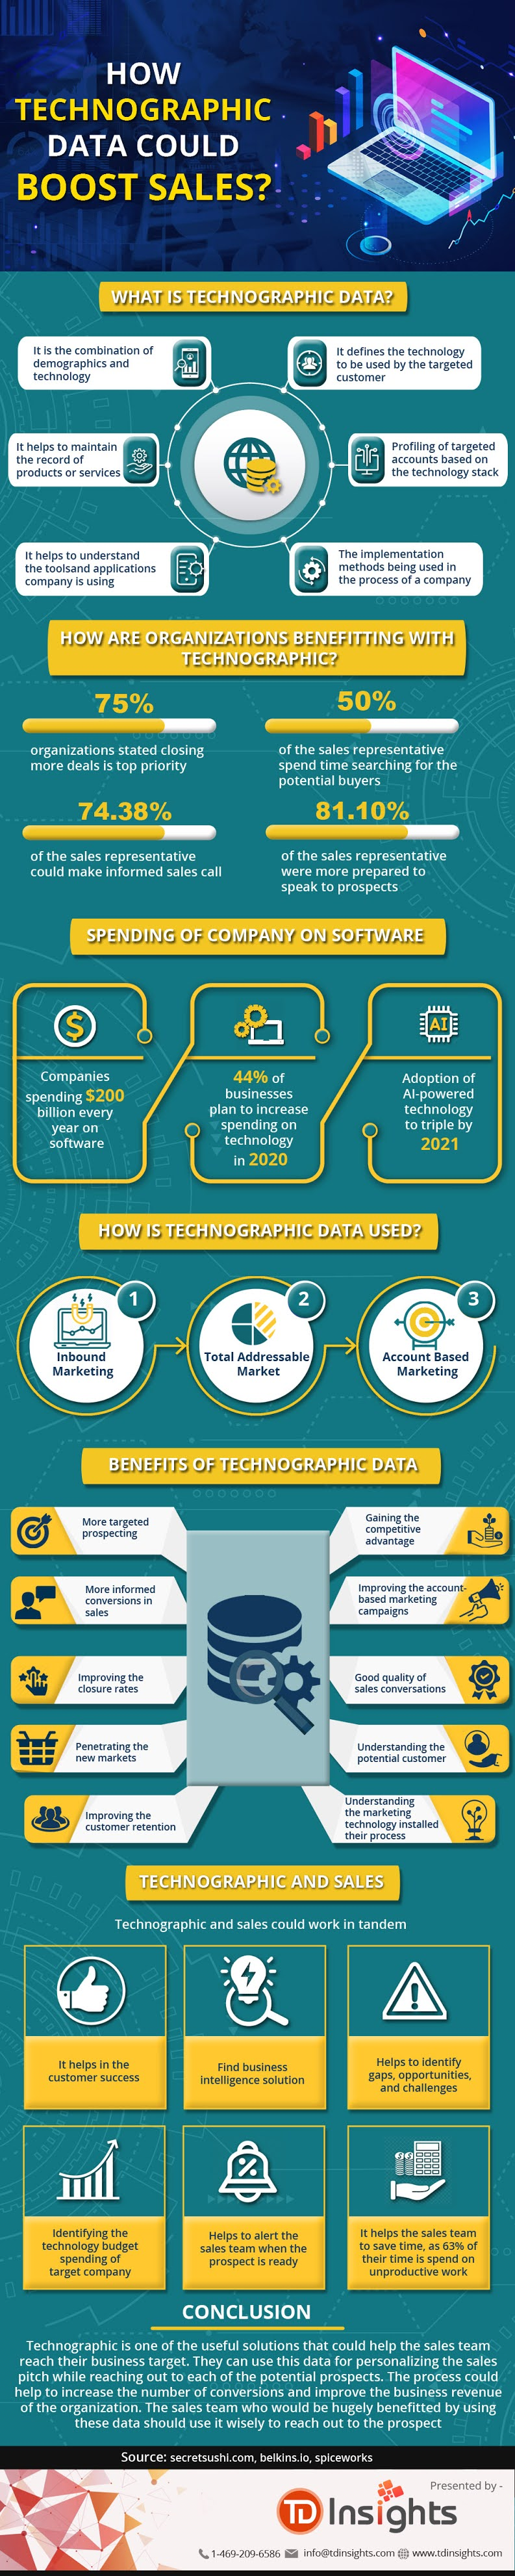 How Technographic Data Could Boost Sales #infographic